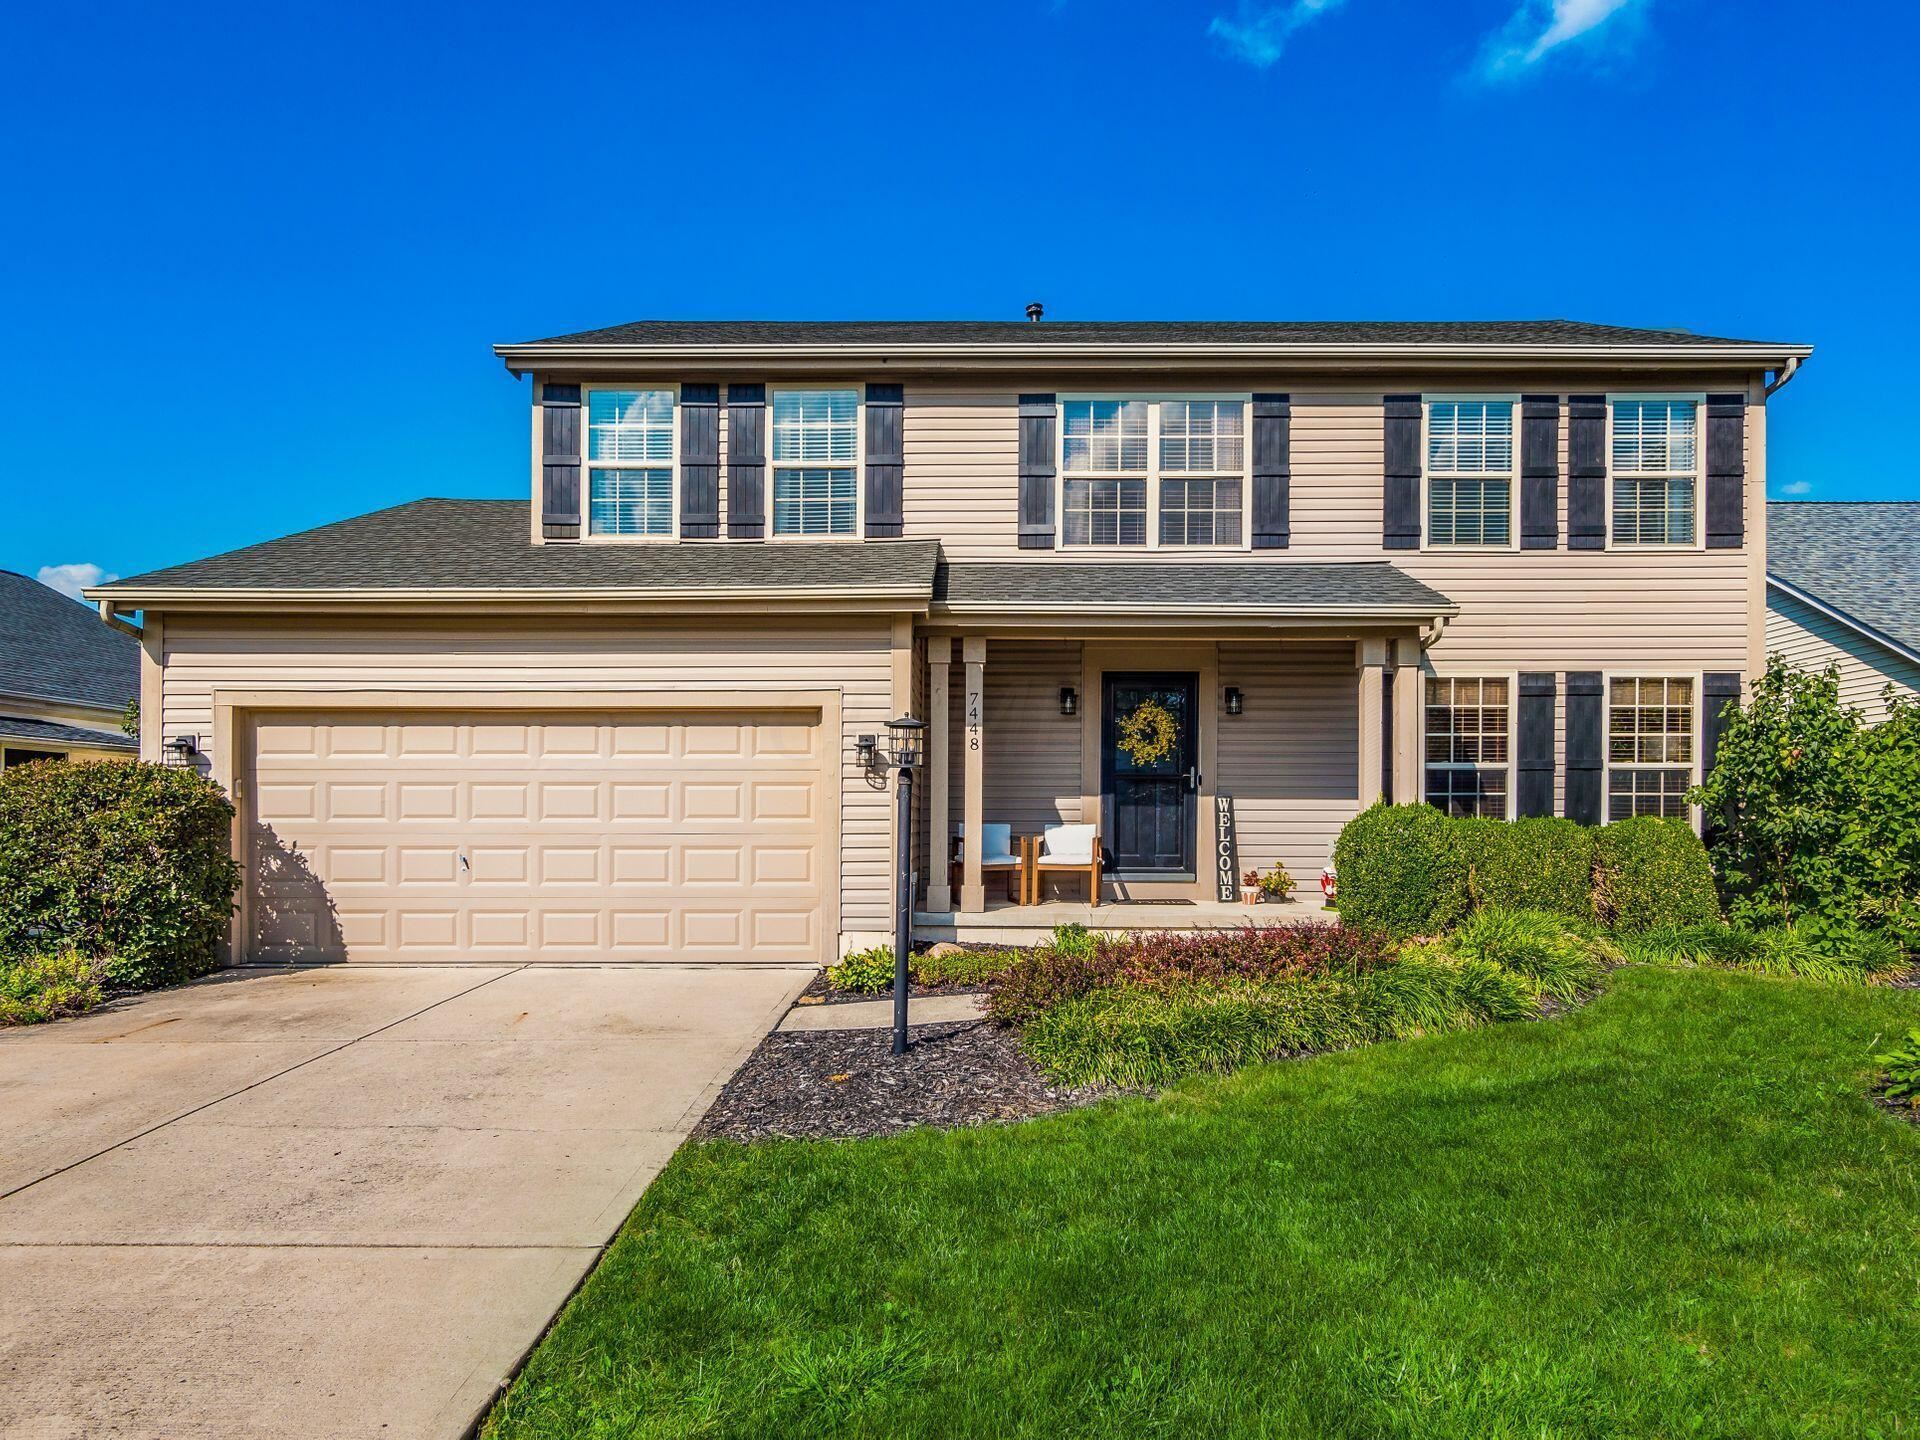 Photo of 7448 Clancy Way, Westerville, OH 43082 (MLS # 221039727)